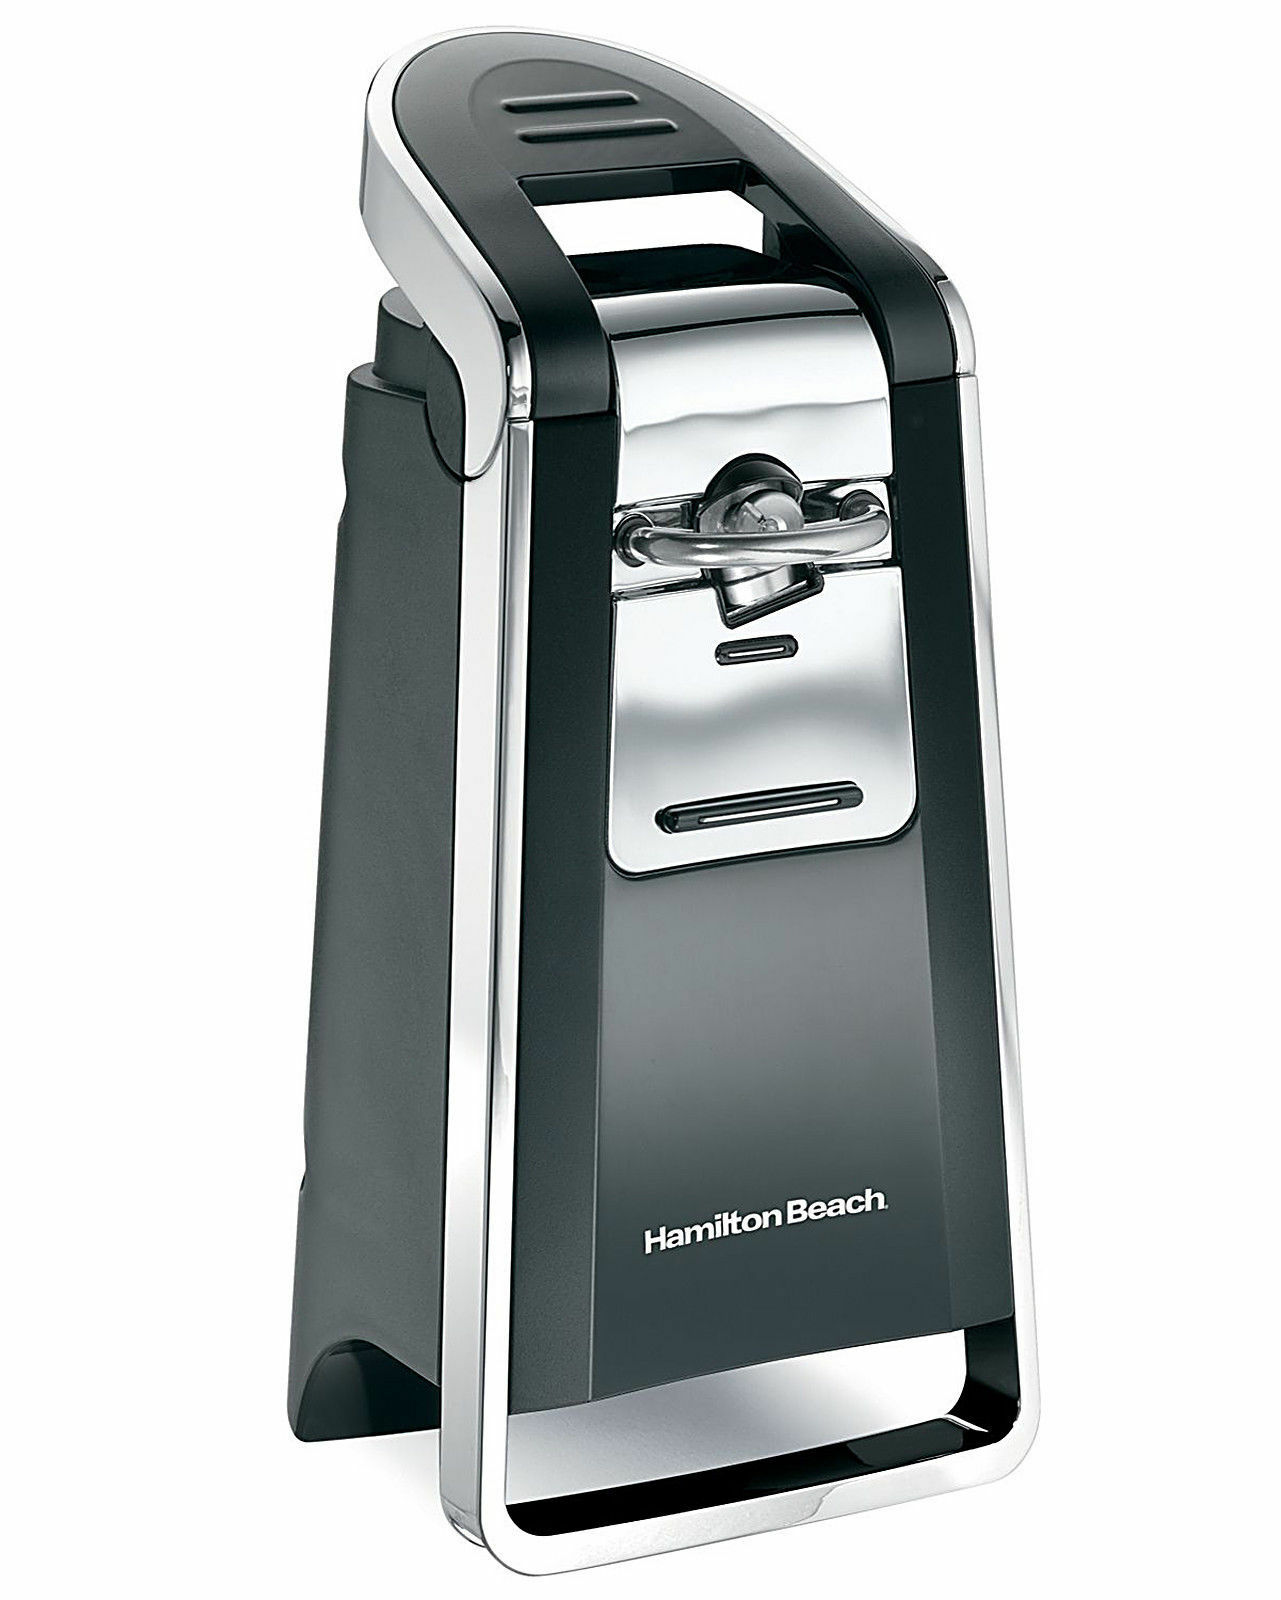 Hamilton Beach Smooth Touch Can Opener   Model